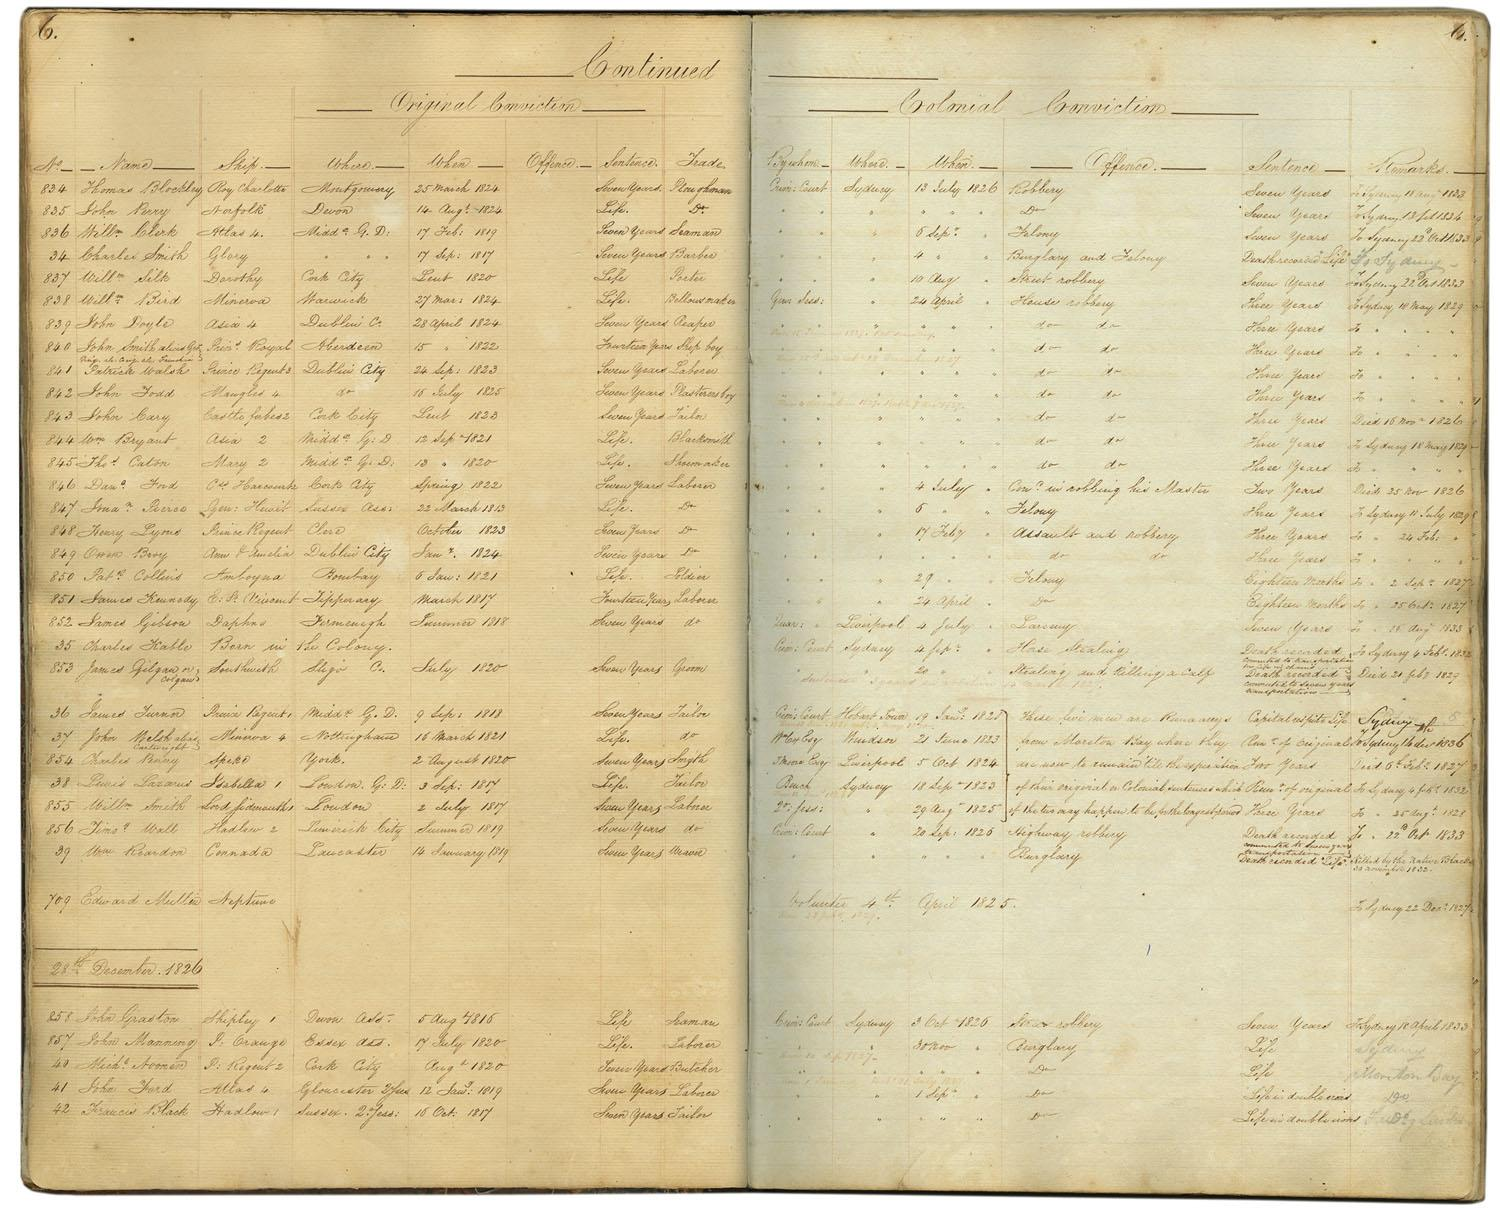 Extract from the chronological register of convicts at